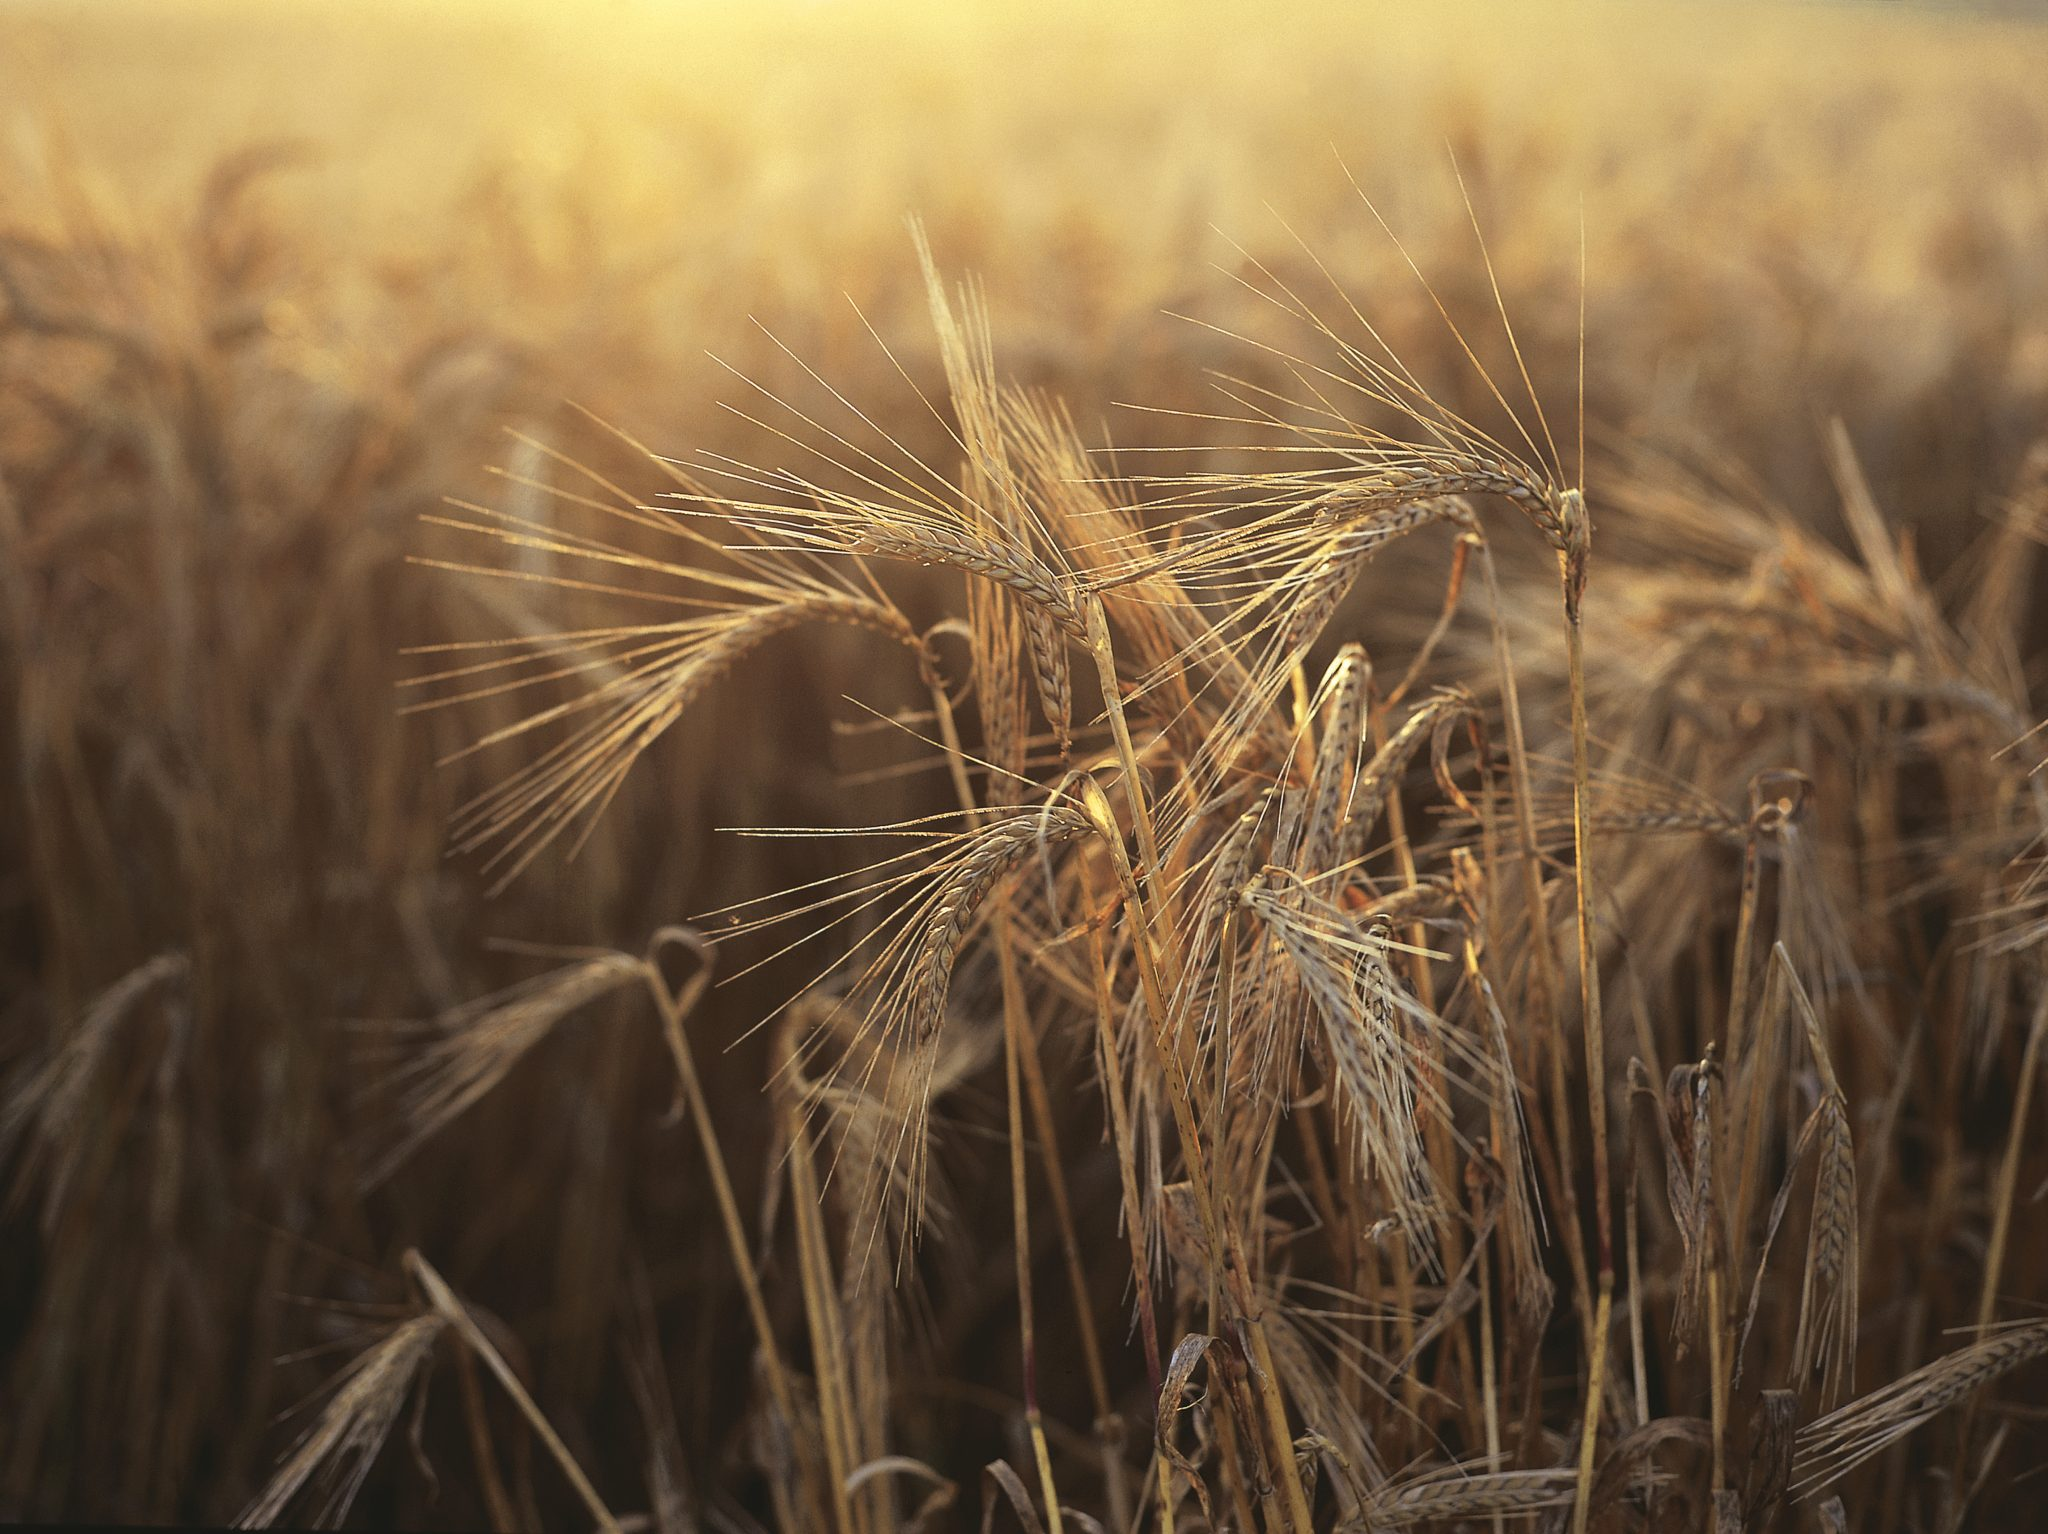 close-up of wheat in a field